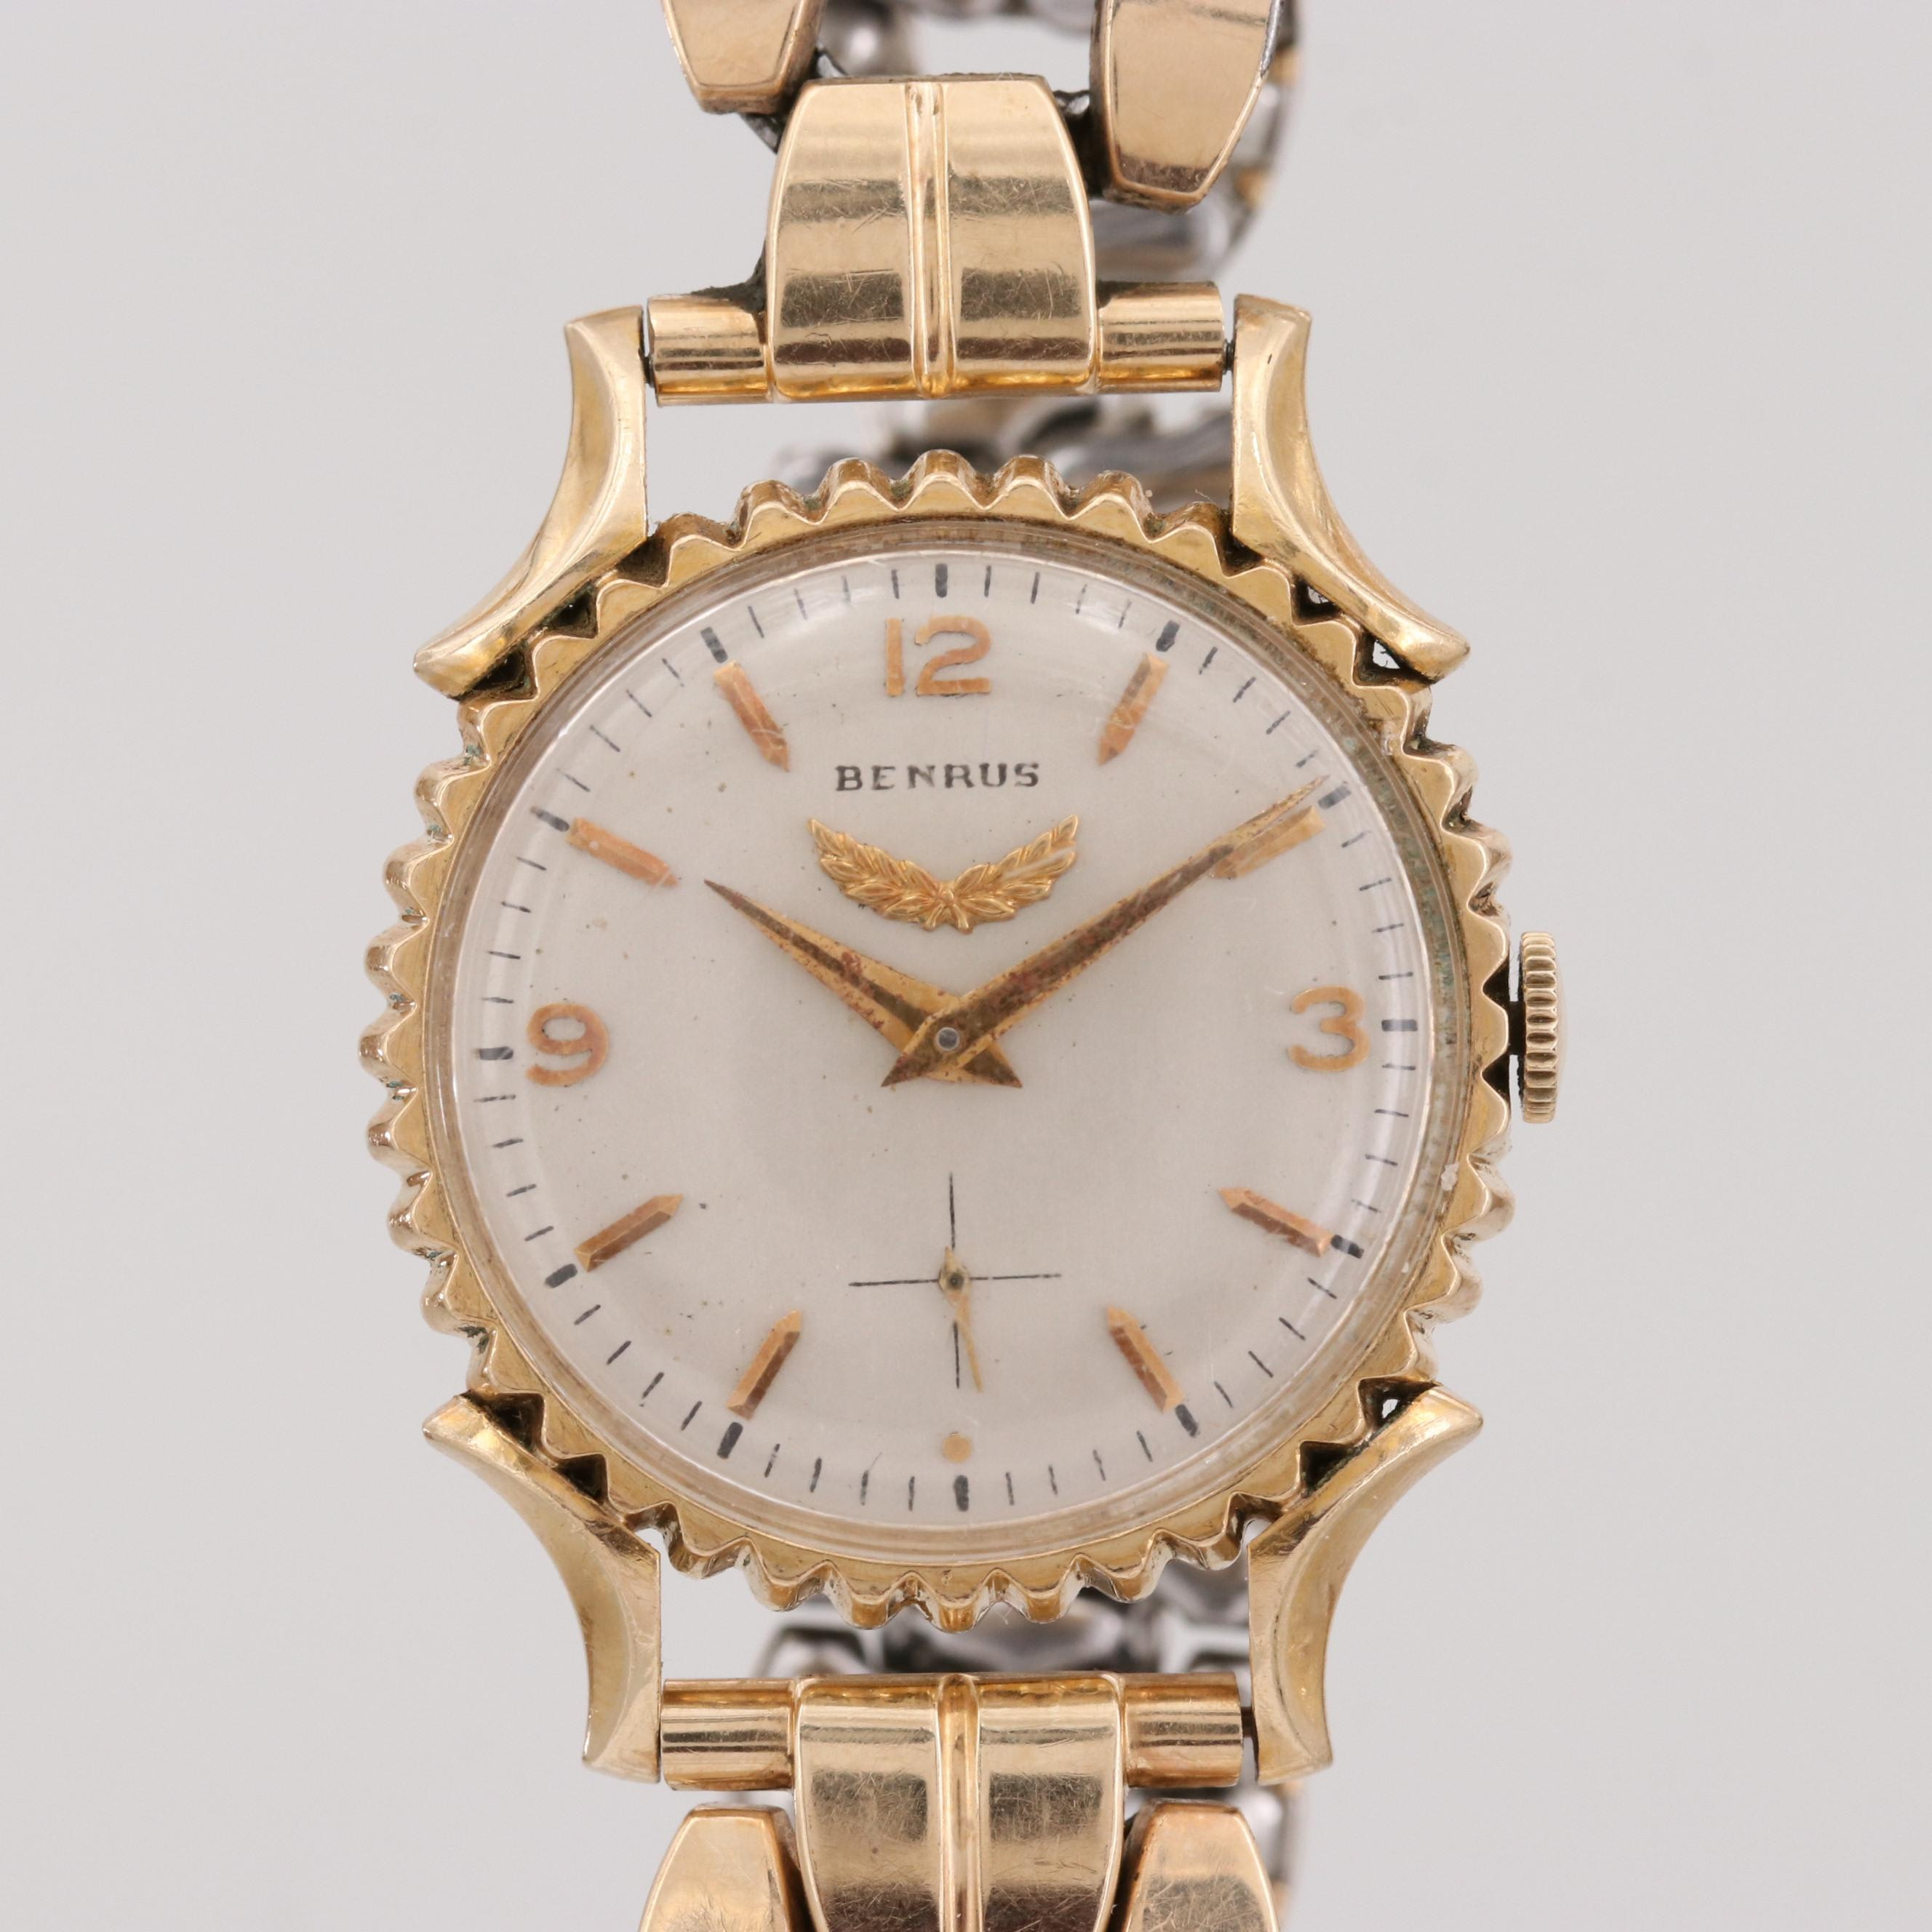 Benrus 10K Gold Filled Wristwatch With Fancy Bezel